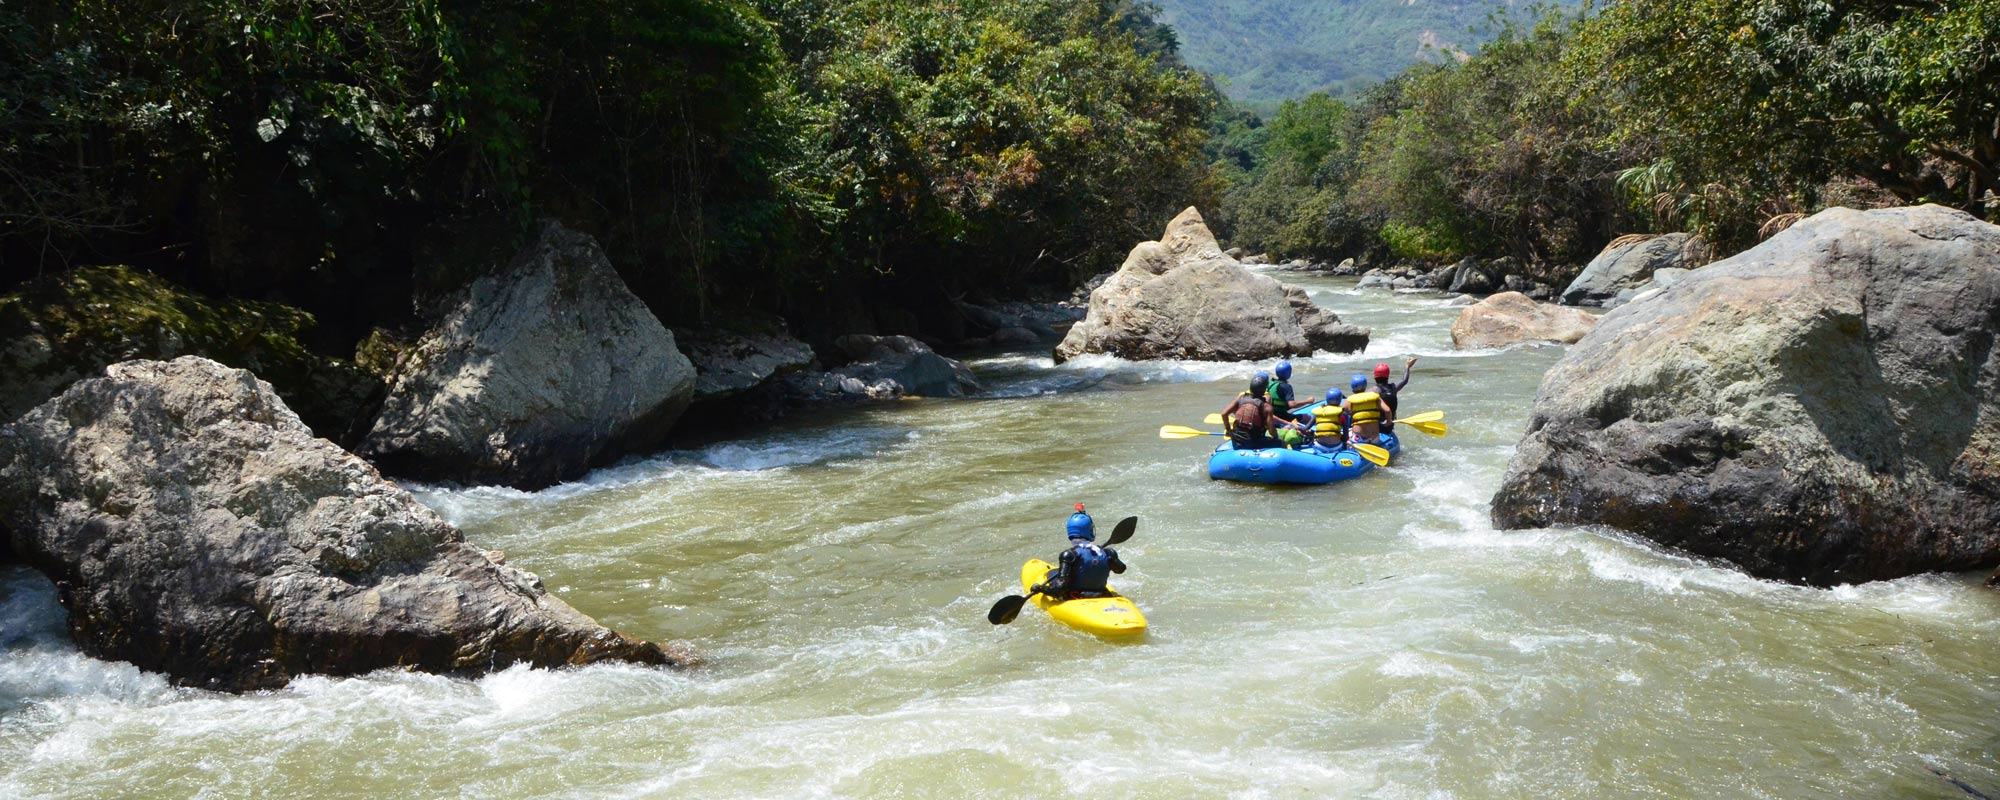 buey-river-banner-01 Buey River Rafting Tour, 1 Day